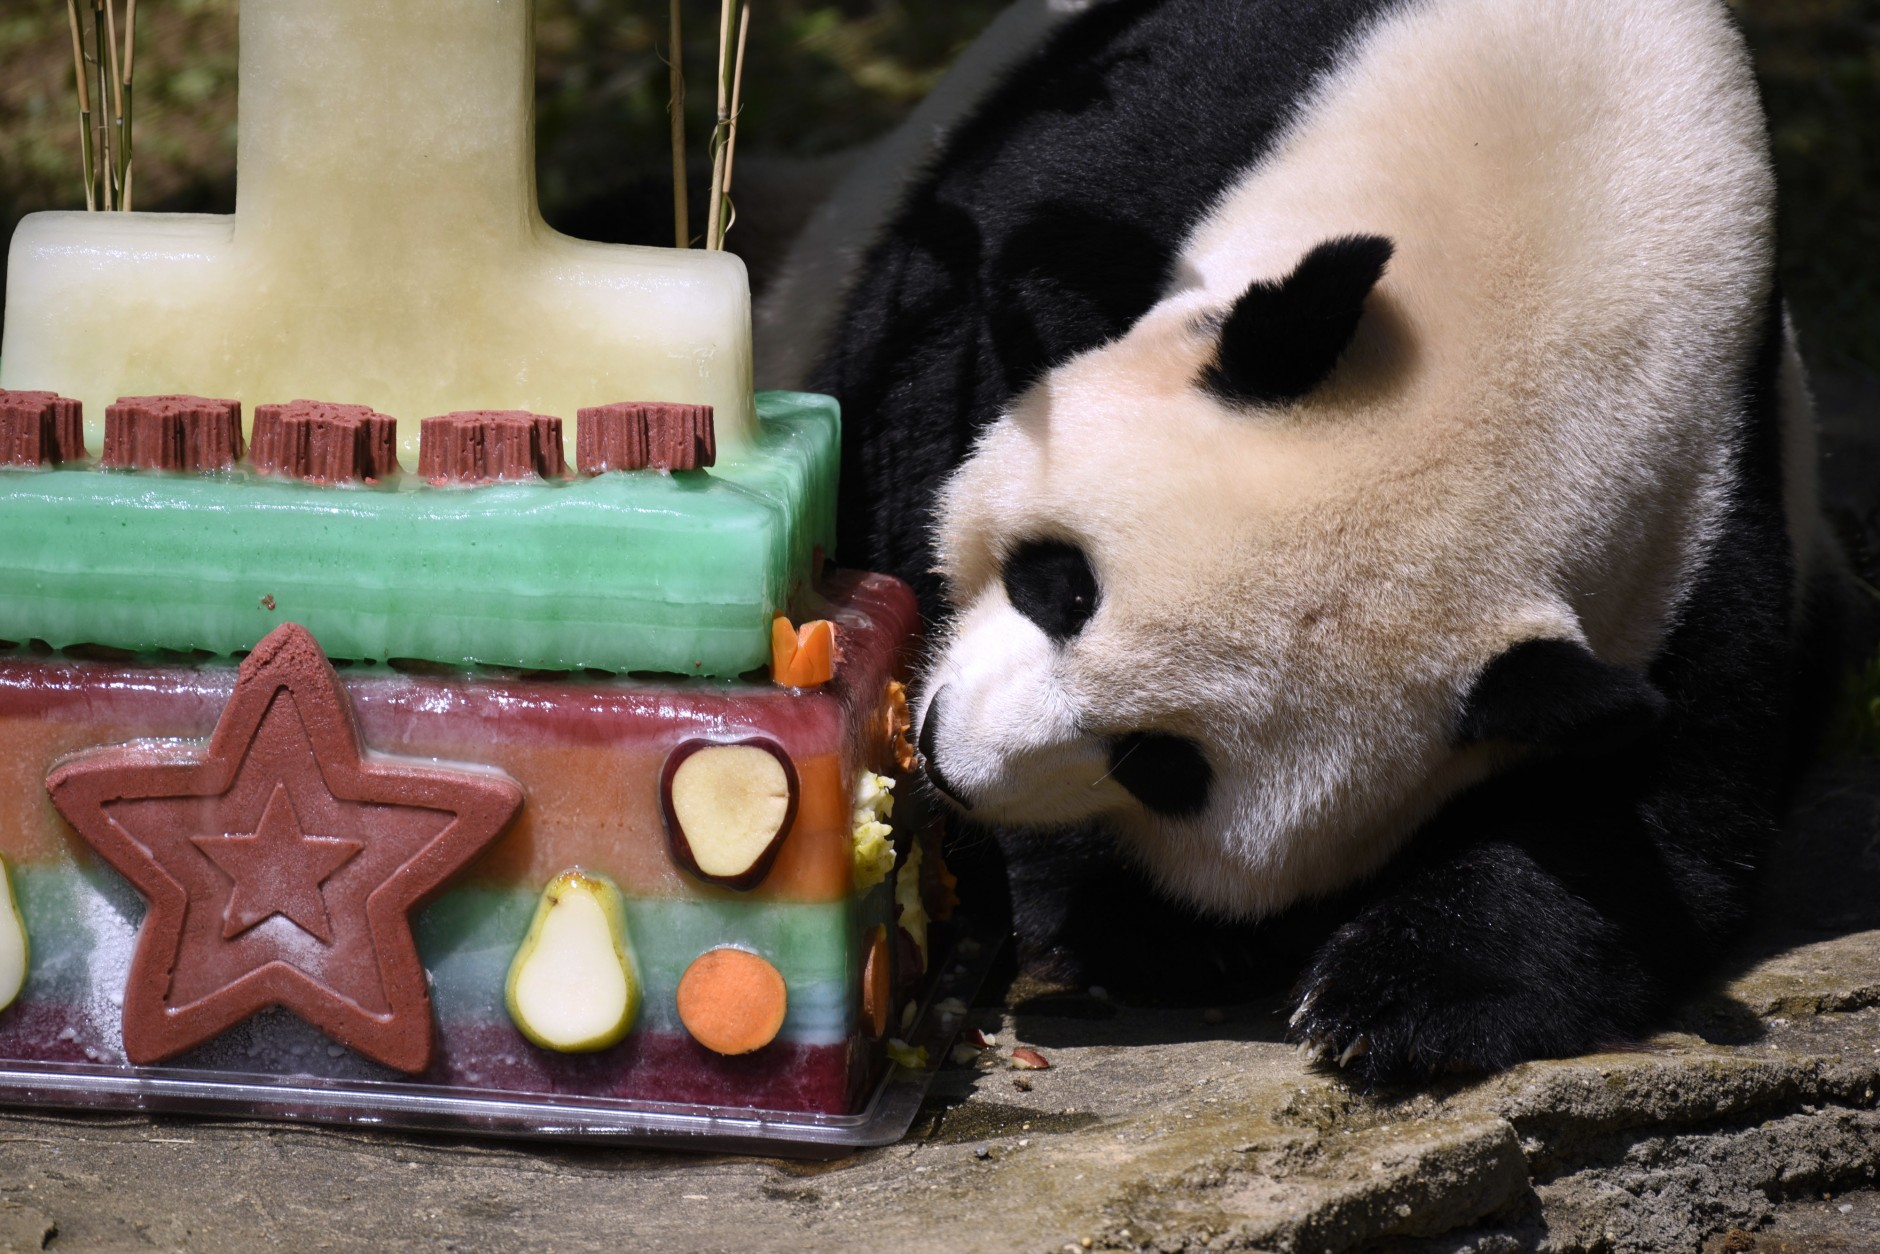 Mei Xiang, mother of giant panda cub Bei Bei, eats Bei Bei's birthday cake at the National Zoo in Washington, Saturday, Aug. 20, 2016, during a celebration of Bei Bei's first birthday. (AP Photo/Sait Serkan Gurbuz)